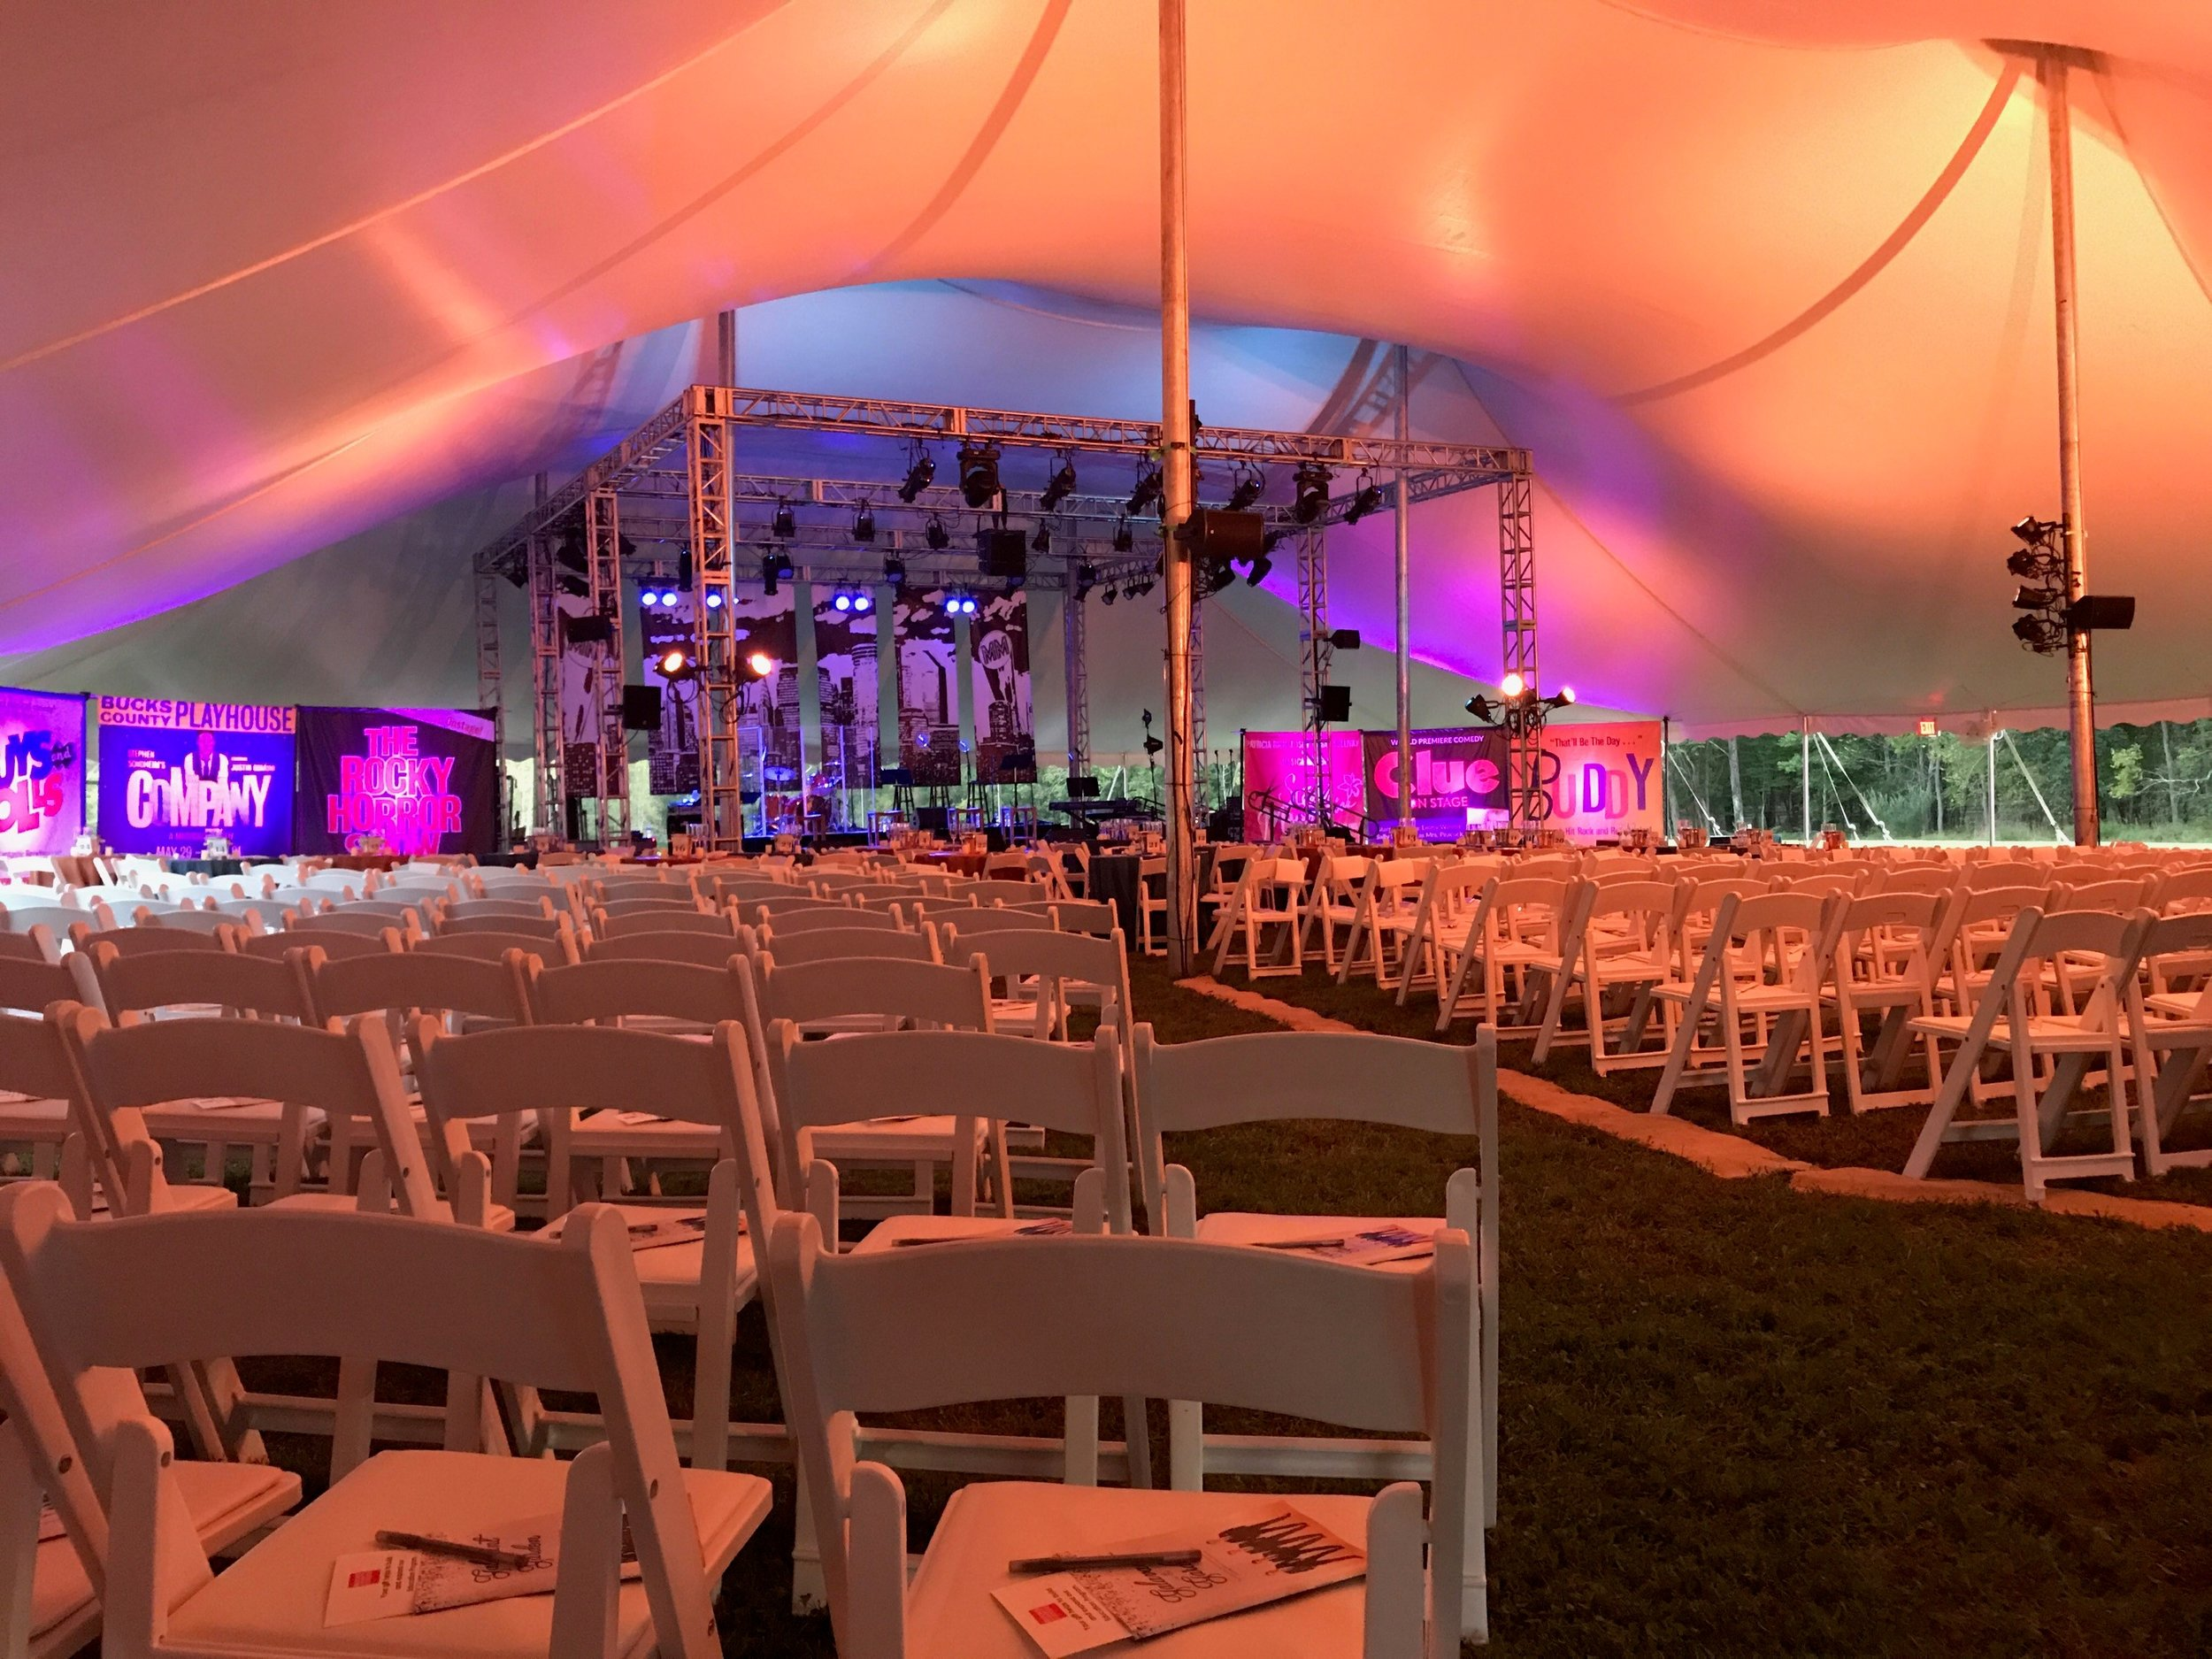 concert tent view from audience seats.jpg